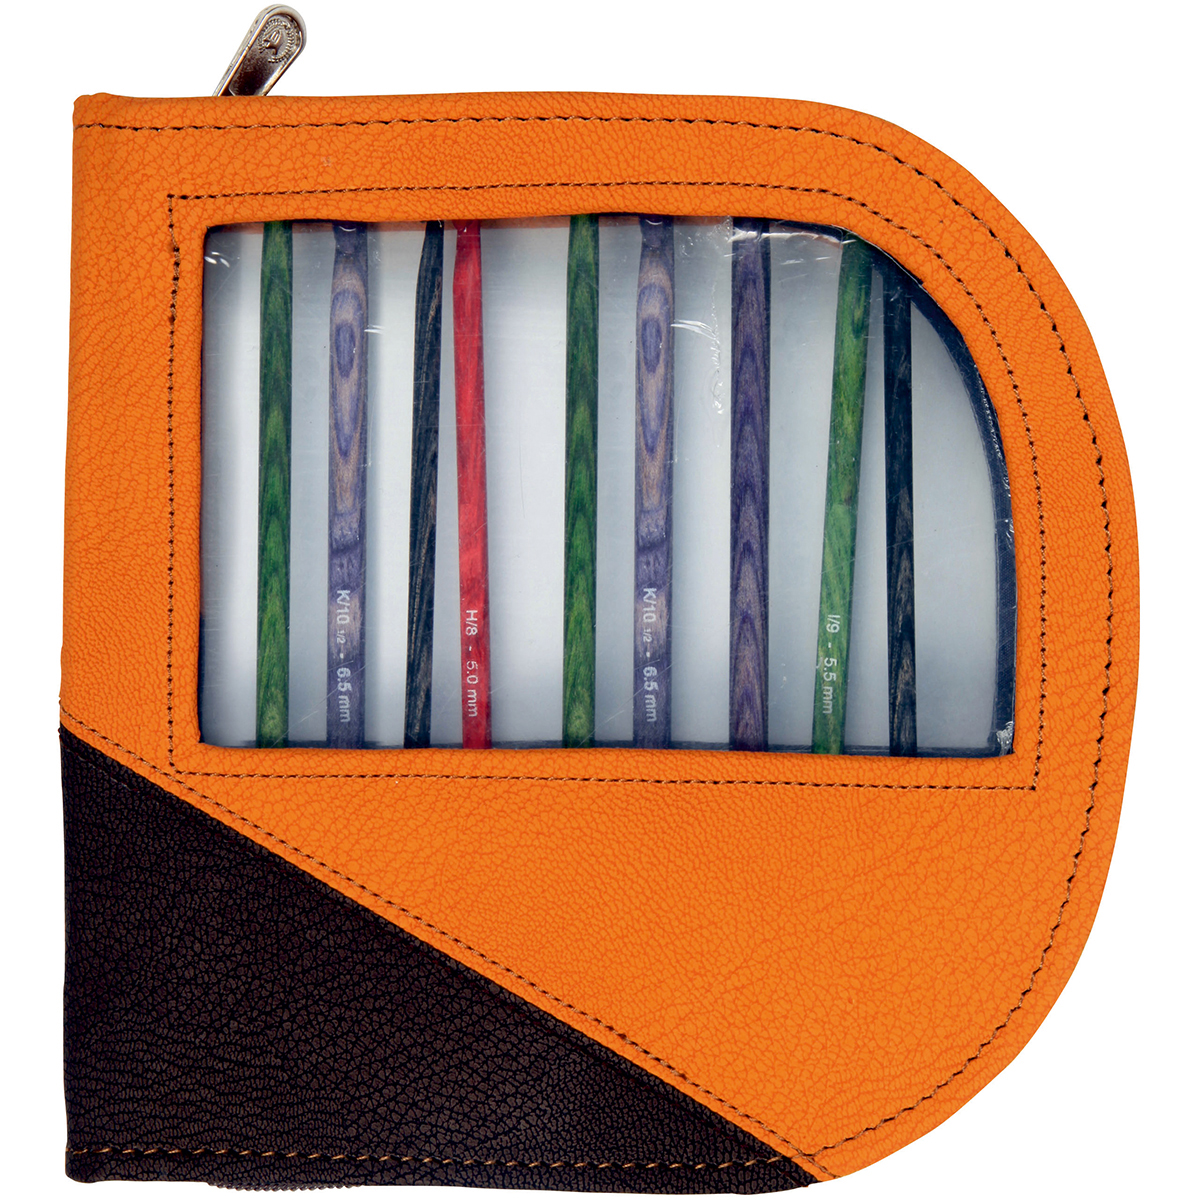 Faux Leather Danube Crochet Hook Case-